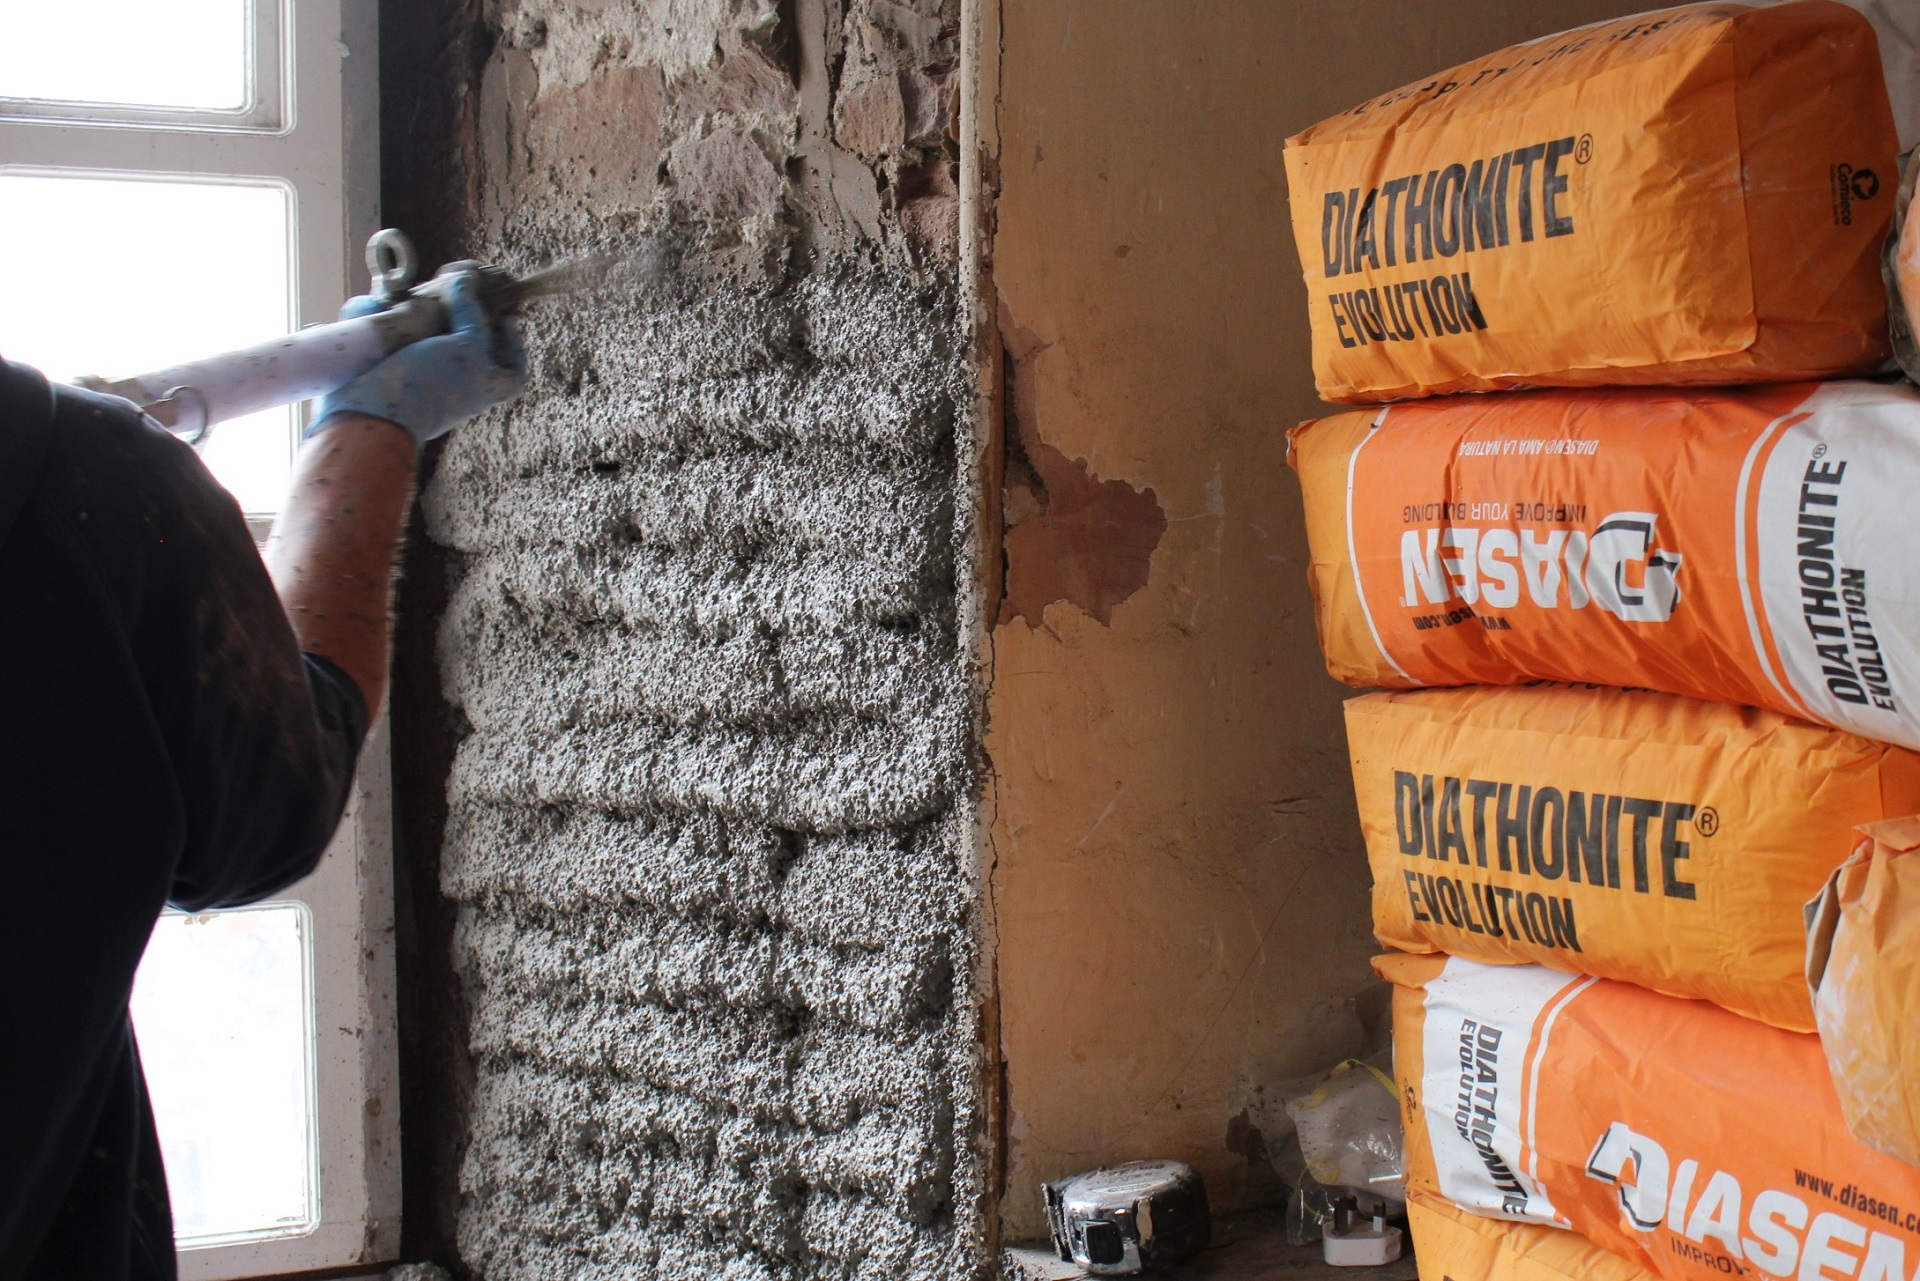 Spraying Diathonite Evolution cork lime thermal plaster internally - news